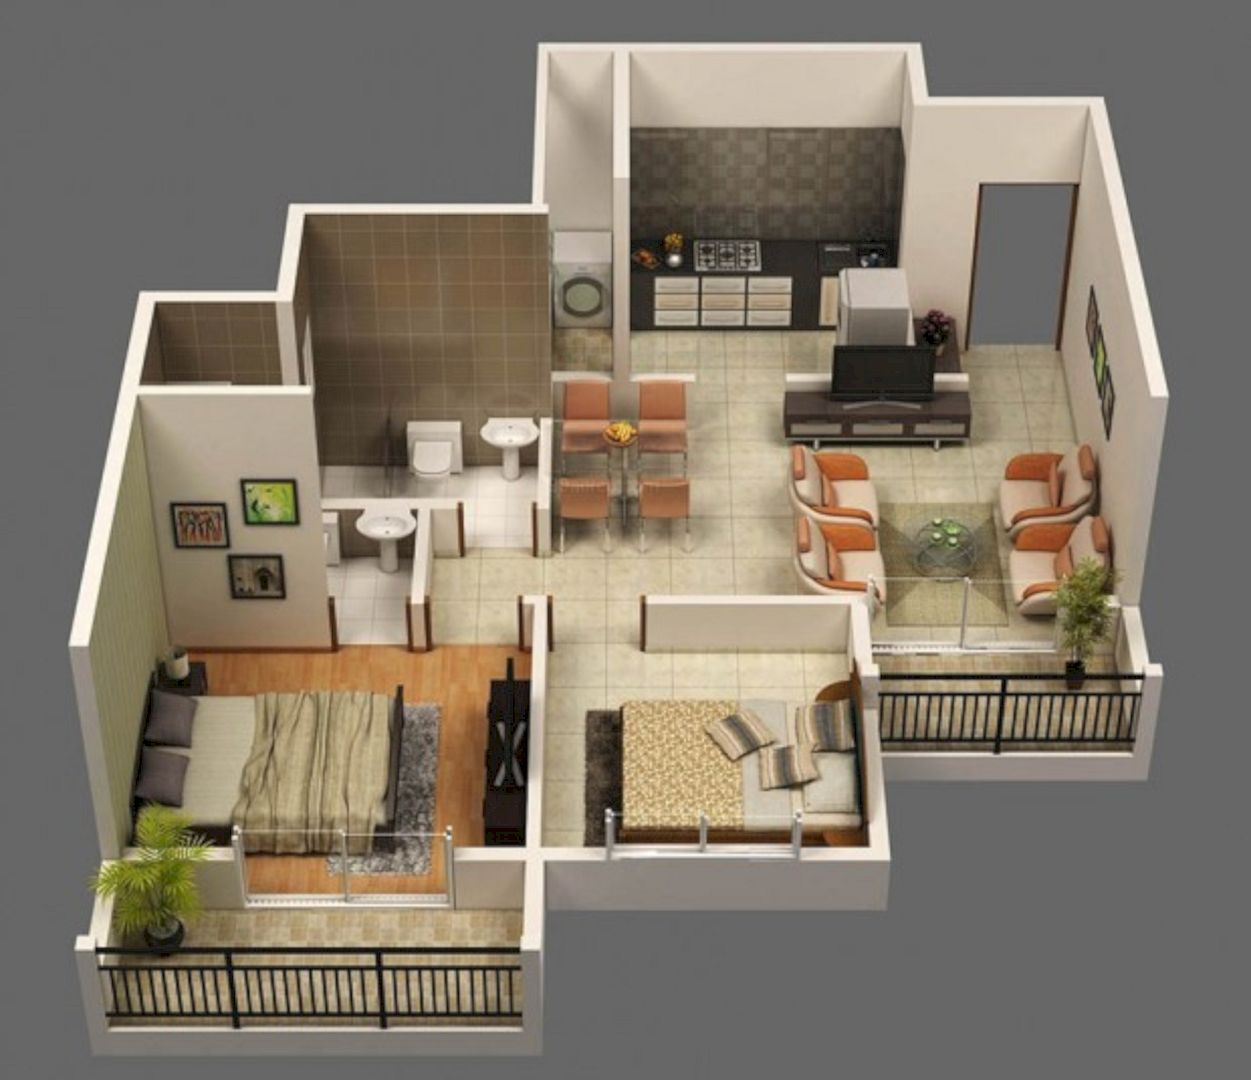 why do we need 3d house plan before starting the project house rh pinterest com